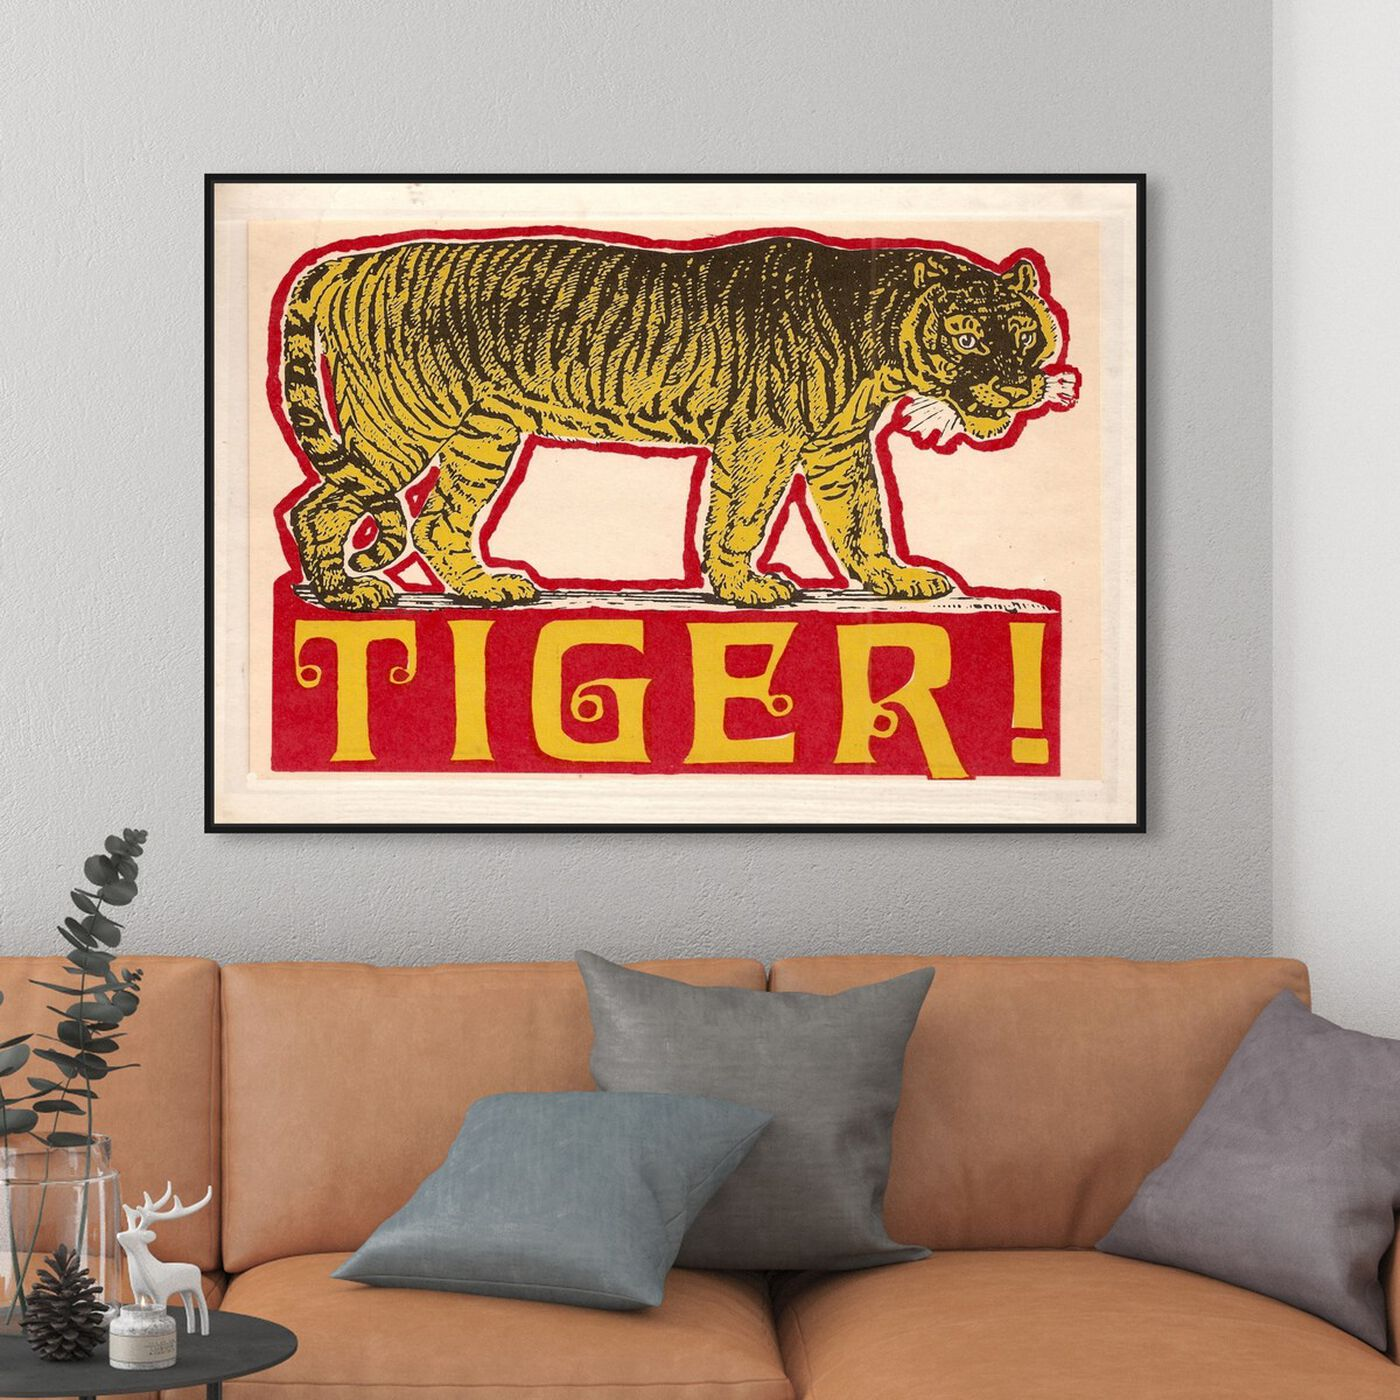 Hanging view of Indian Tiger featuring advertising and posters art.